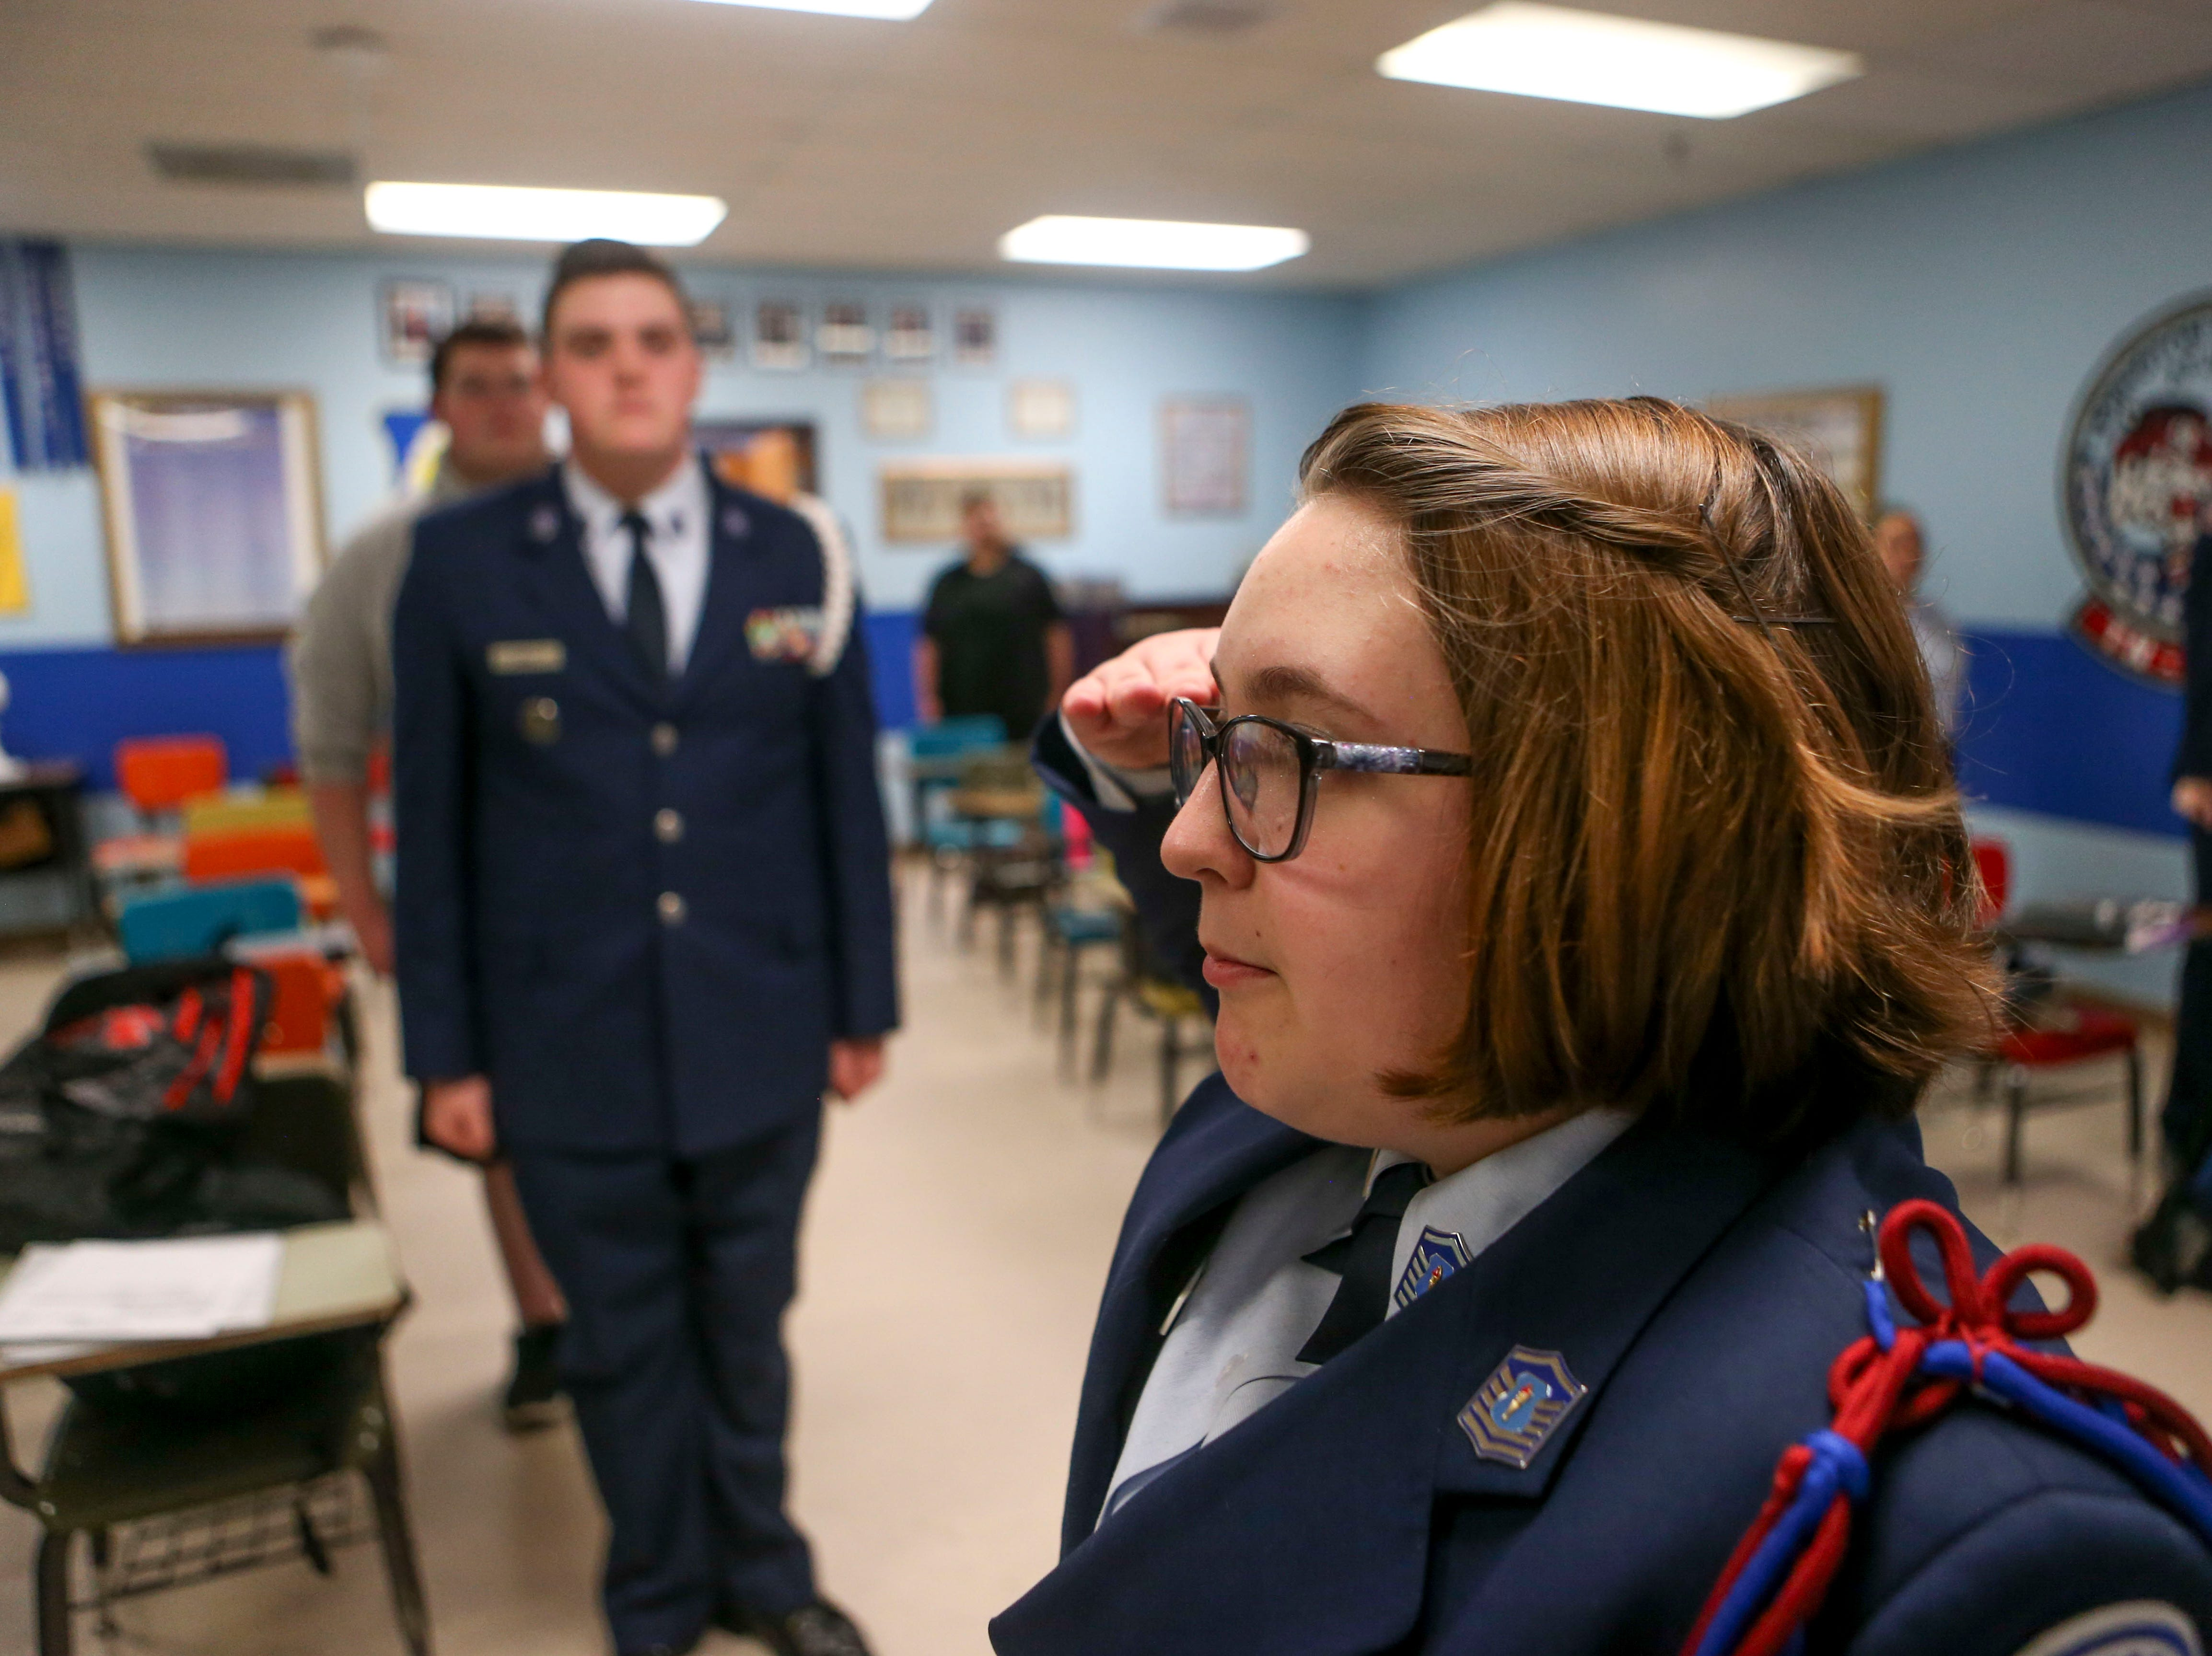 Leloni Hutchinson, 15, a sophomore, calls the class to attention before dismissing at the bell during ROTC class at Lexington High School in Lexington, Tenn., on Wednesday, Feb. 6, 2019.